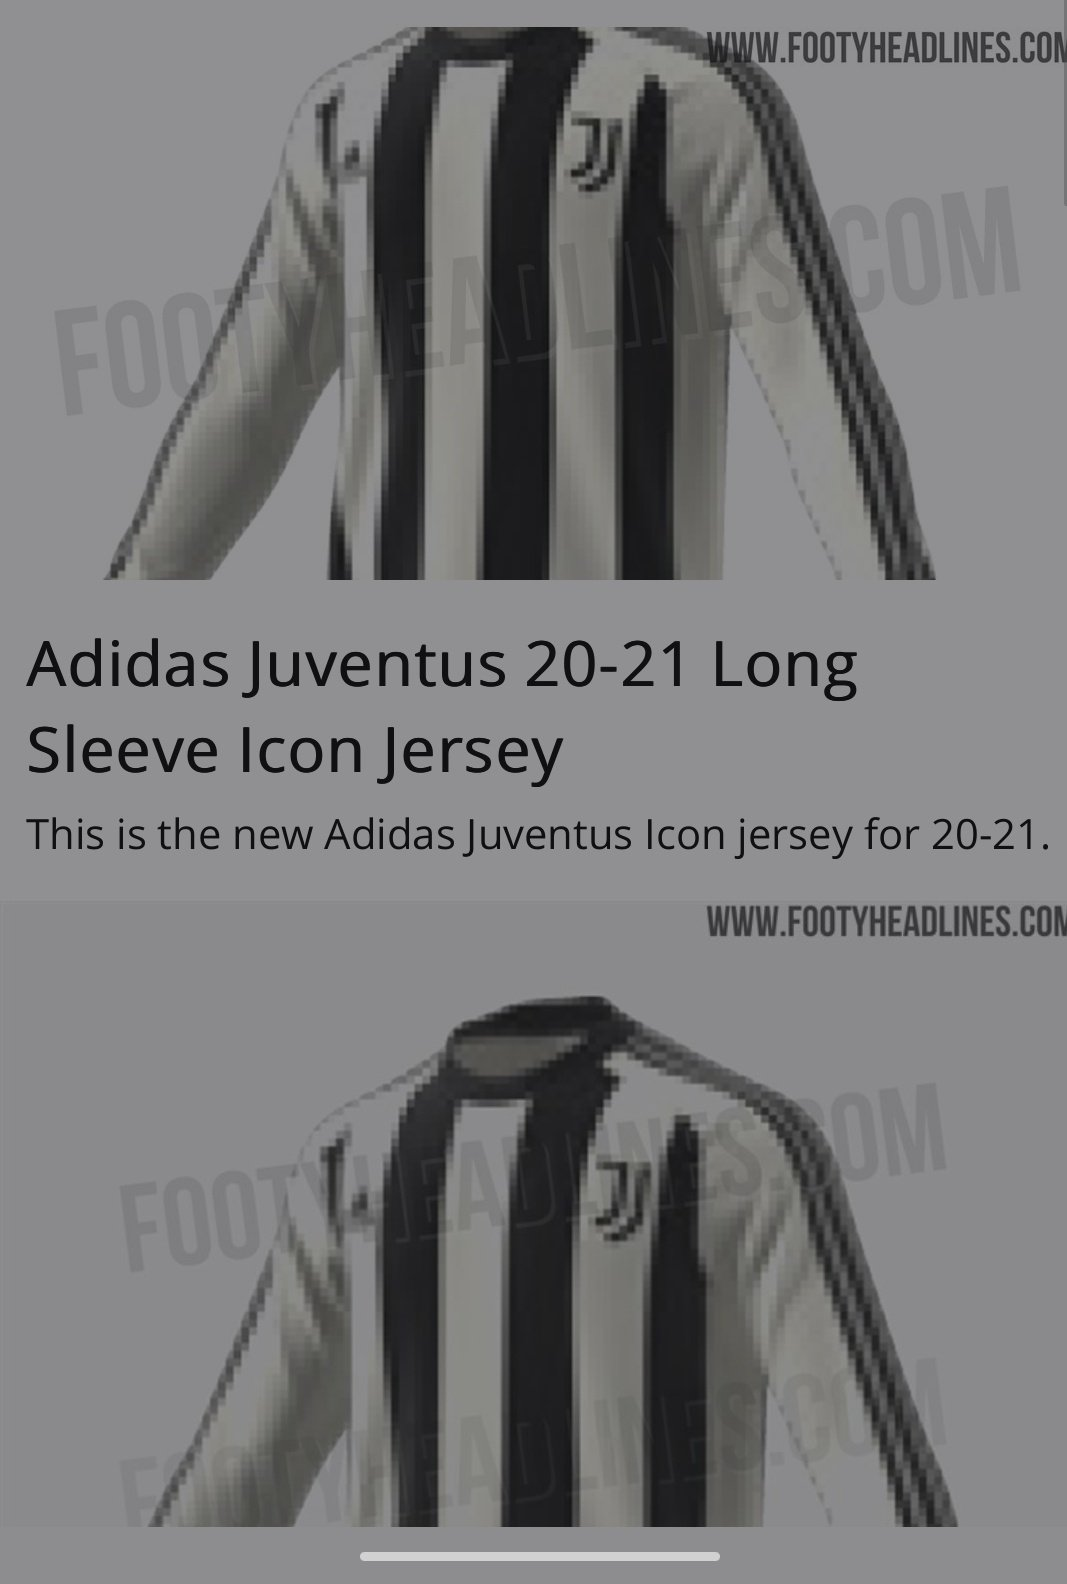 Juvefc On Twitter Adidas Wil Release A Classic Long Sleeve Icon Jersey For Juventus Footyheadlines